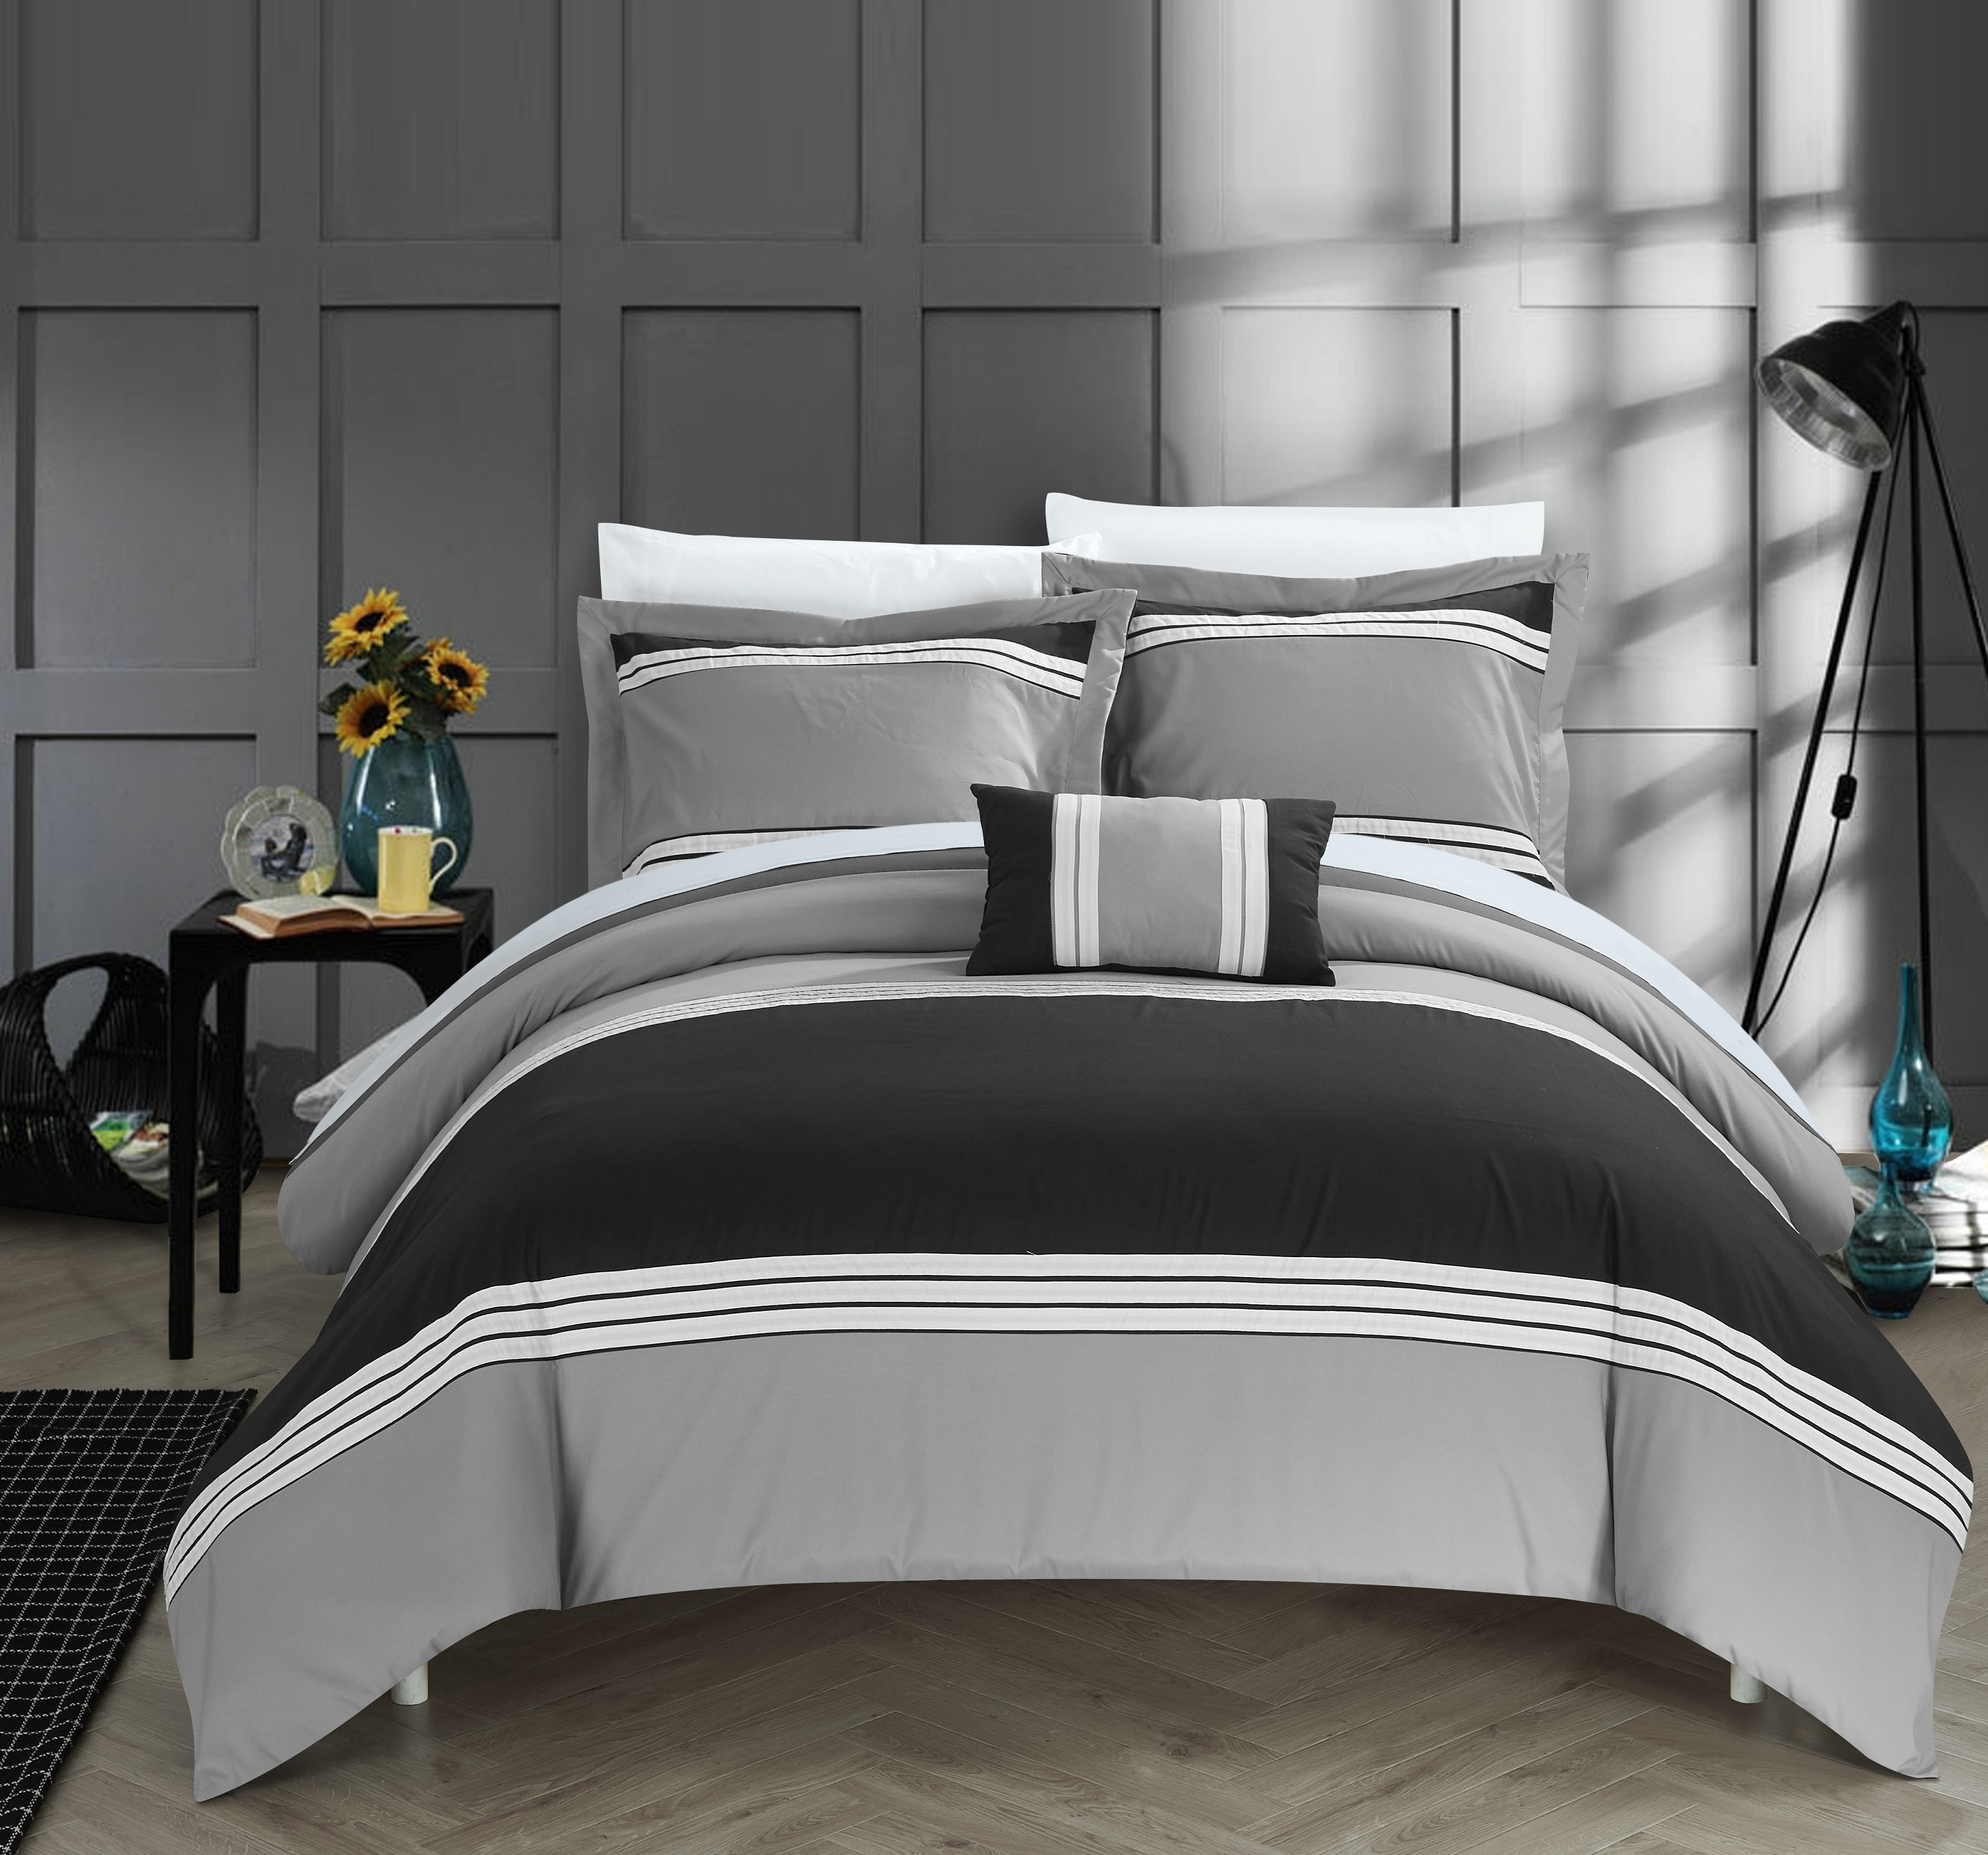 Chic Home 8-Piece Sawyer Hotel Collection Bed In a Bag Duvet Set